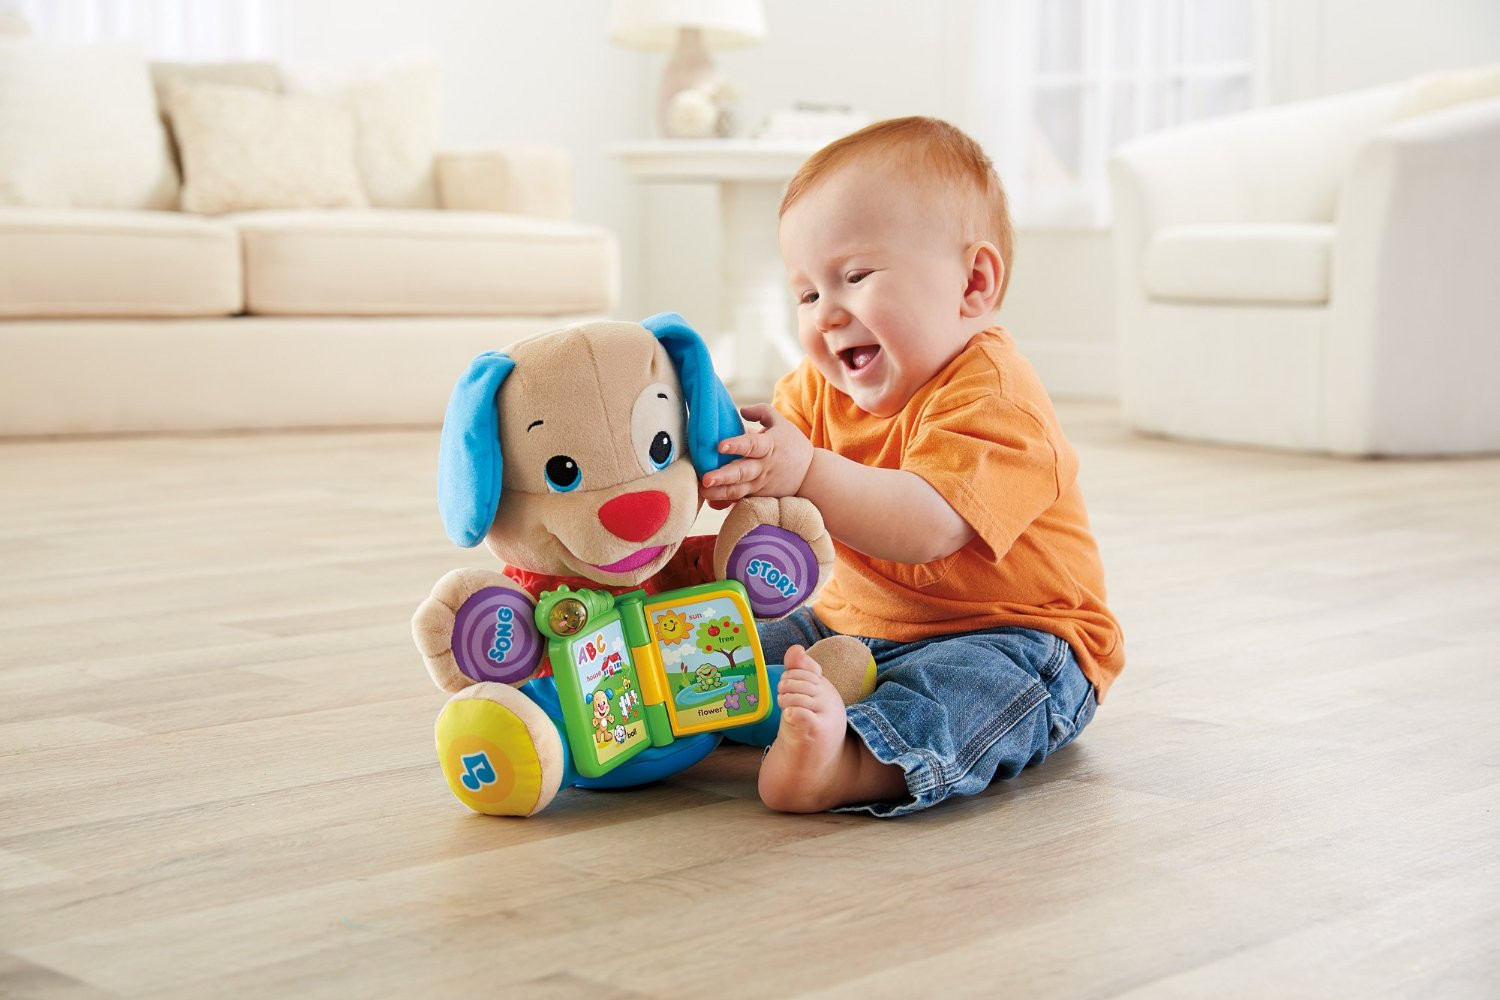 Gift Ideas For 8 Month Old Baby Girl  Best Gift Ideas for Six Month Old Baby Boys and Girls 2017